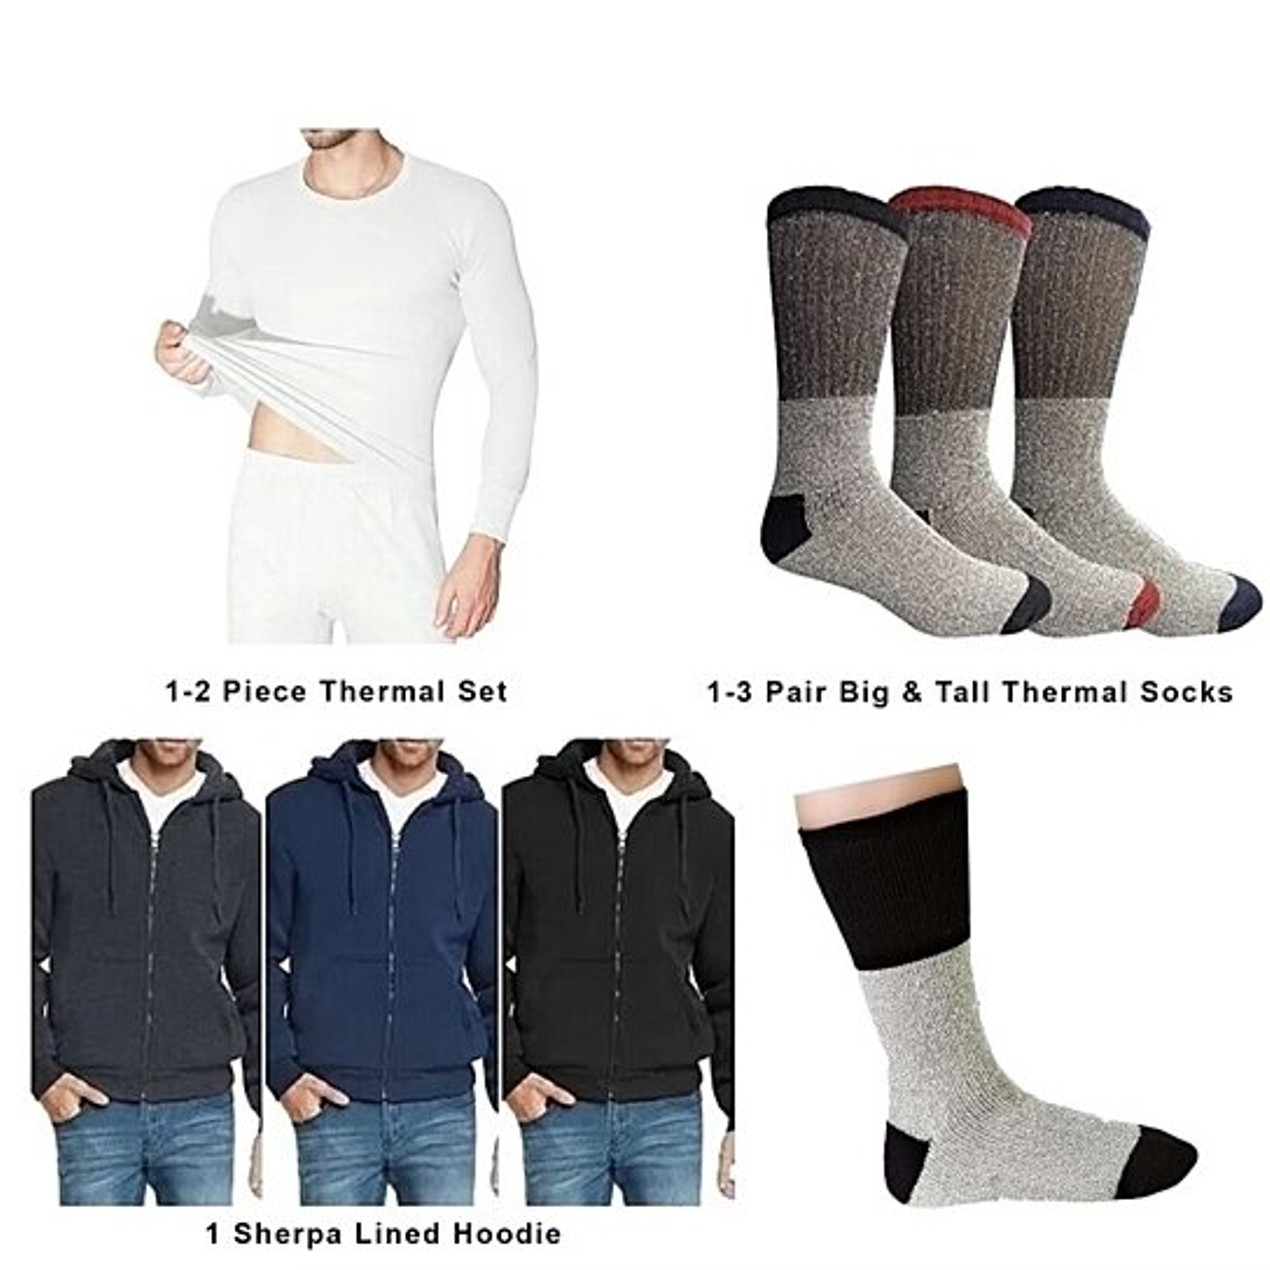 6-Piece Men's Sherpa Lined Hoodie, 2-Piece Thermal Set, Thermal Socks